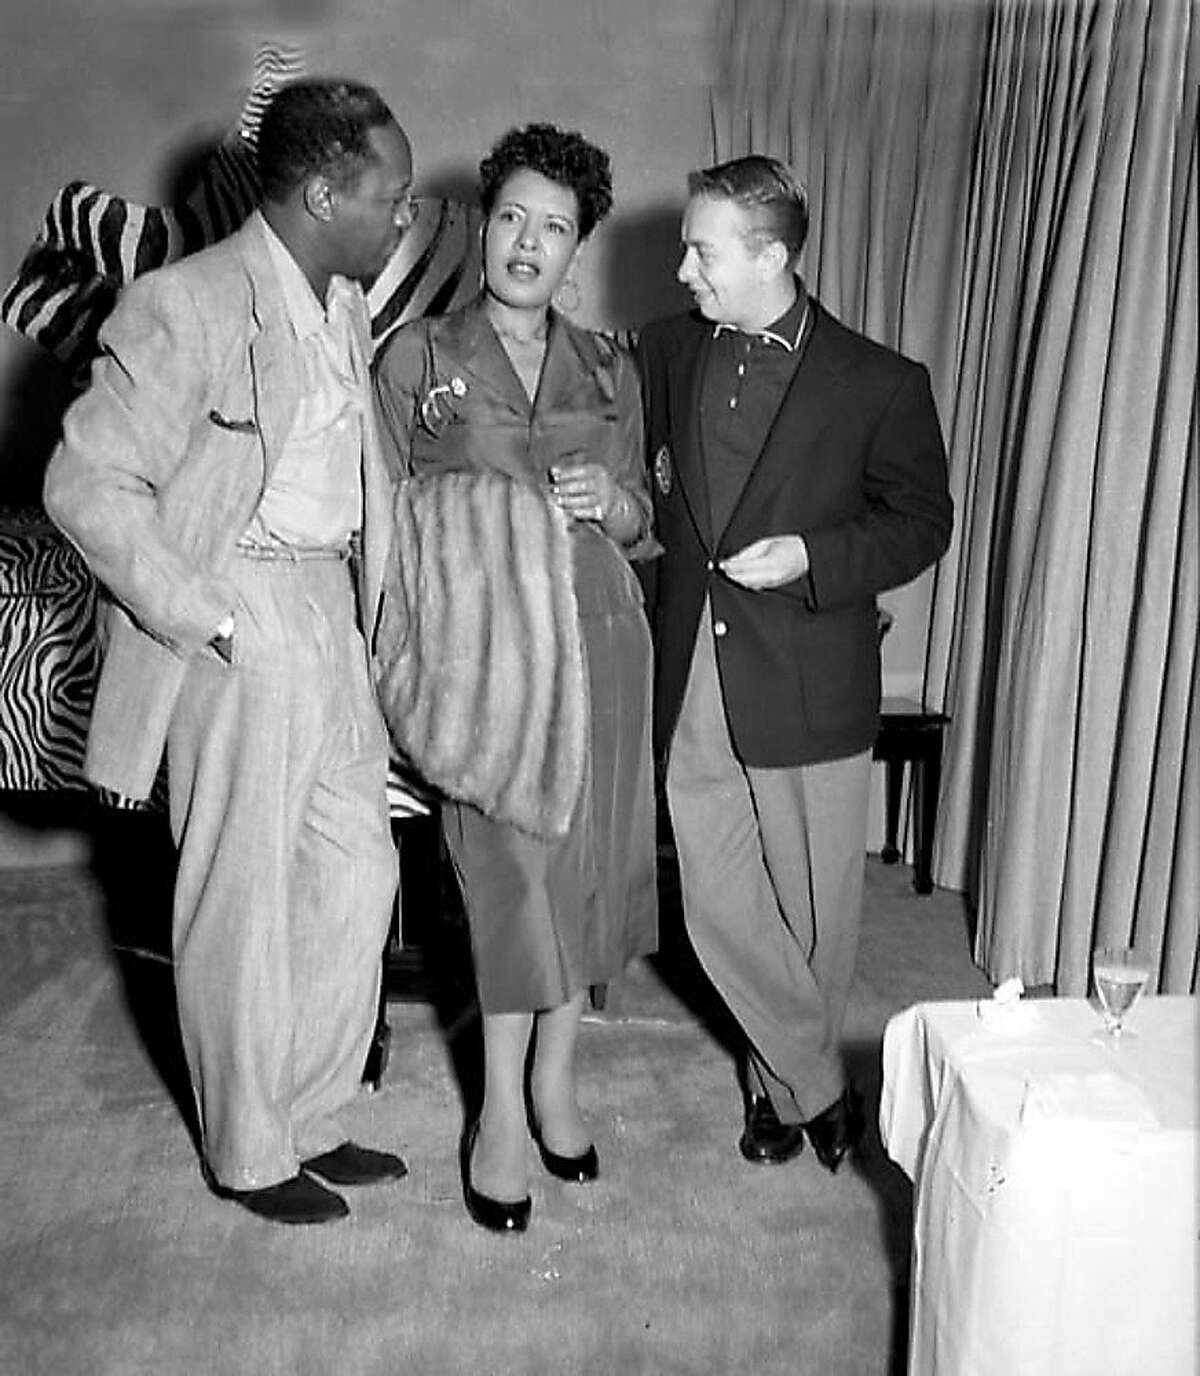 Billie Holiday and Mel TormŽ in the Fillmore during the 1950's.